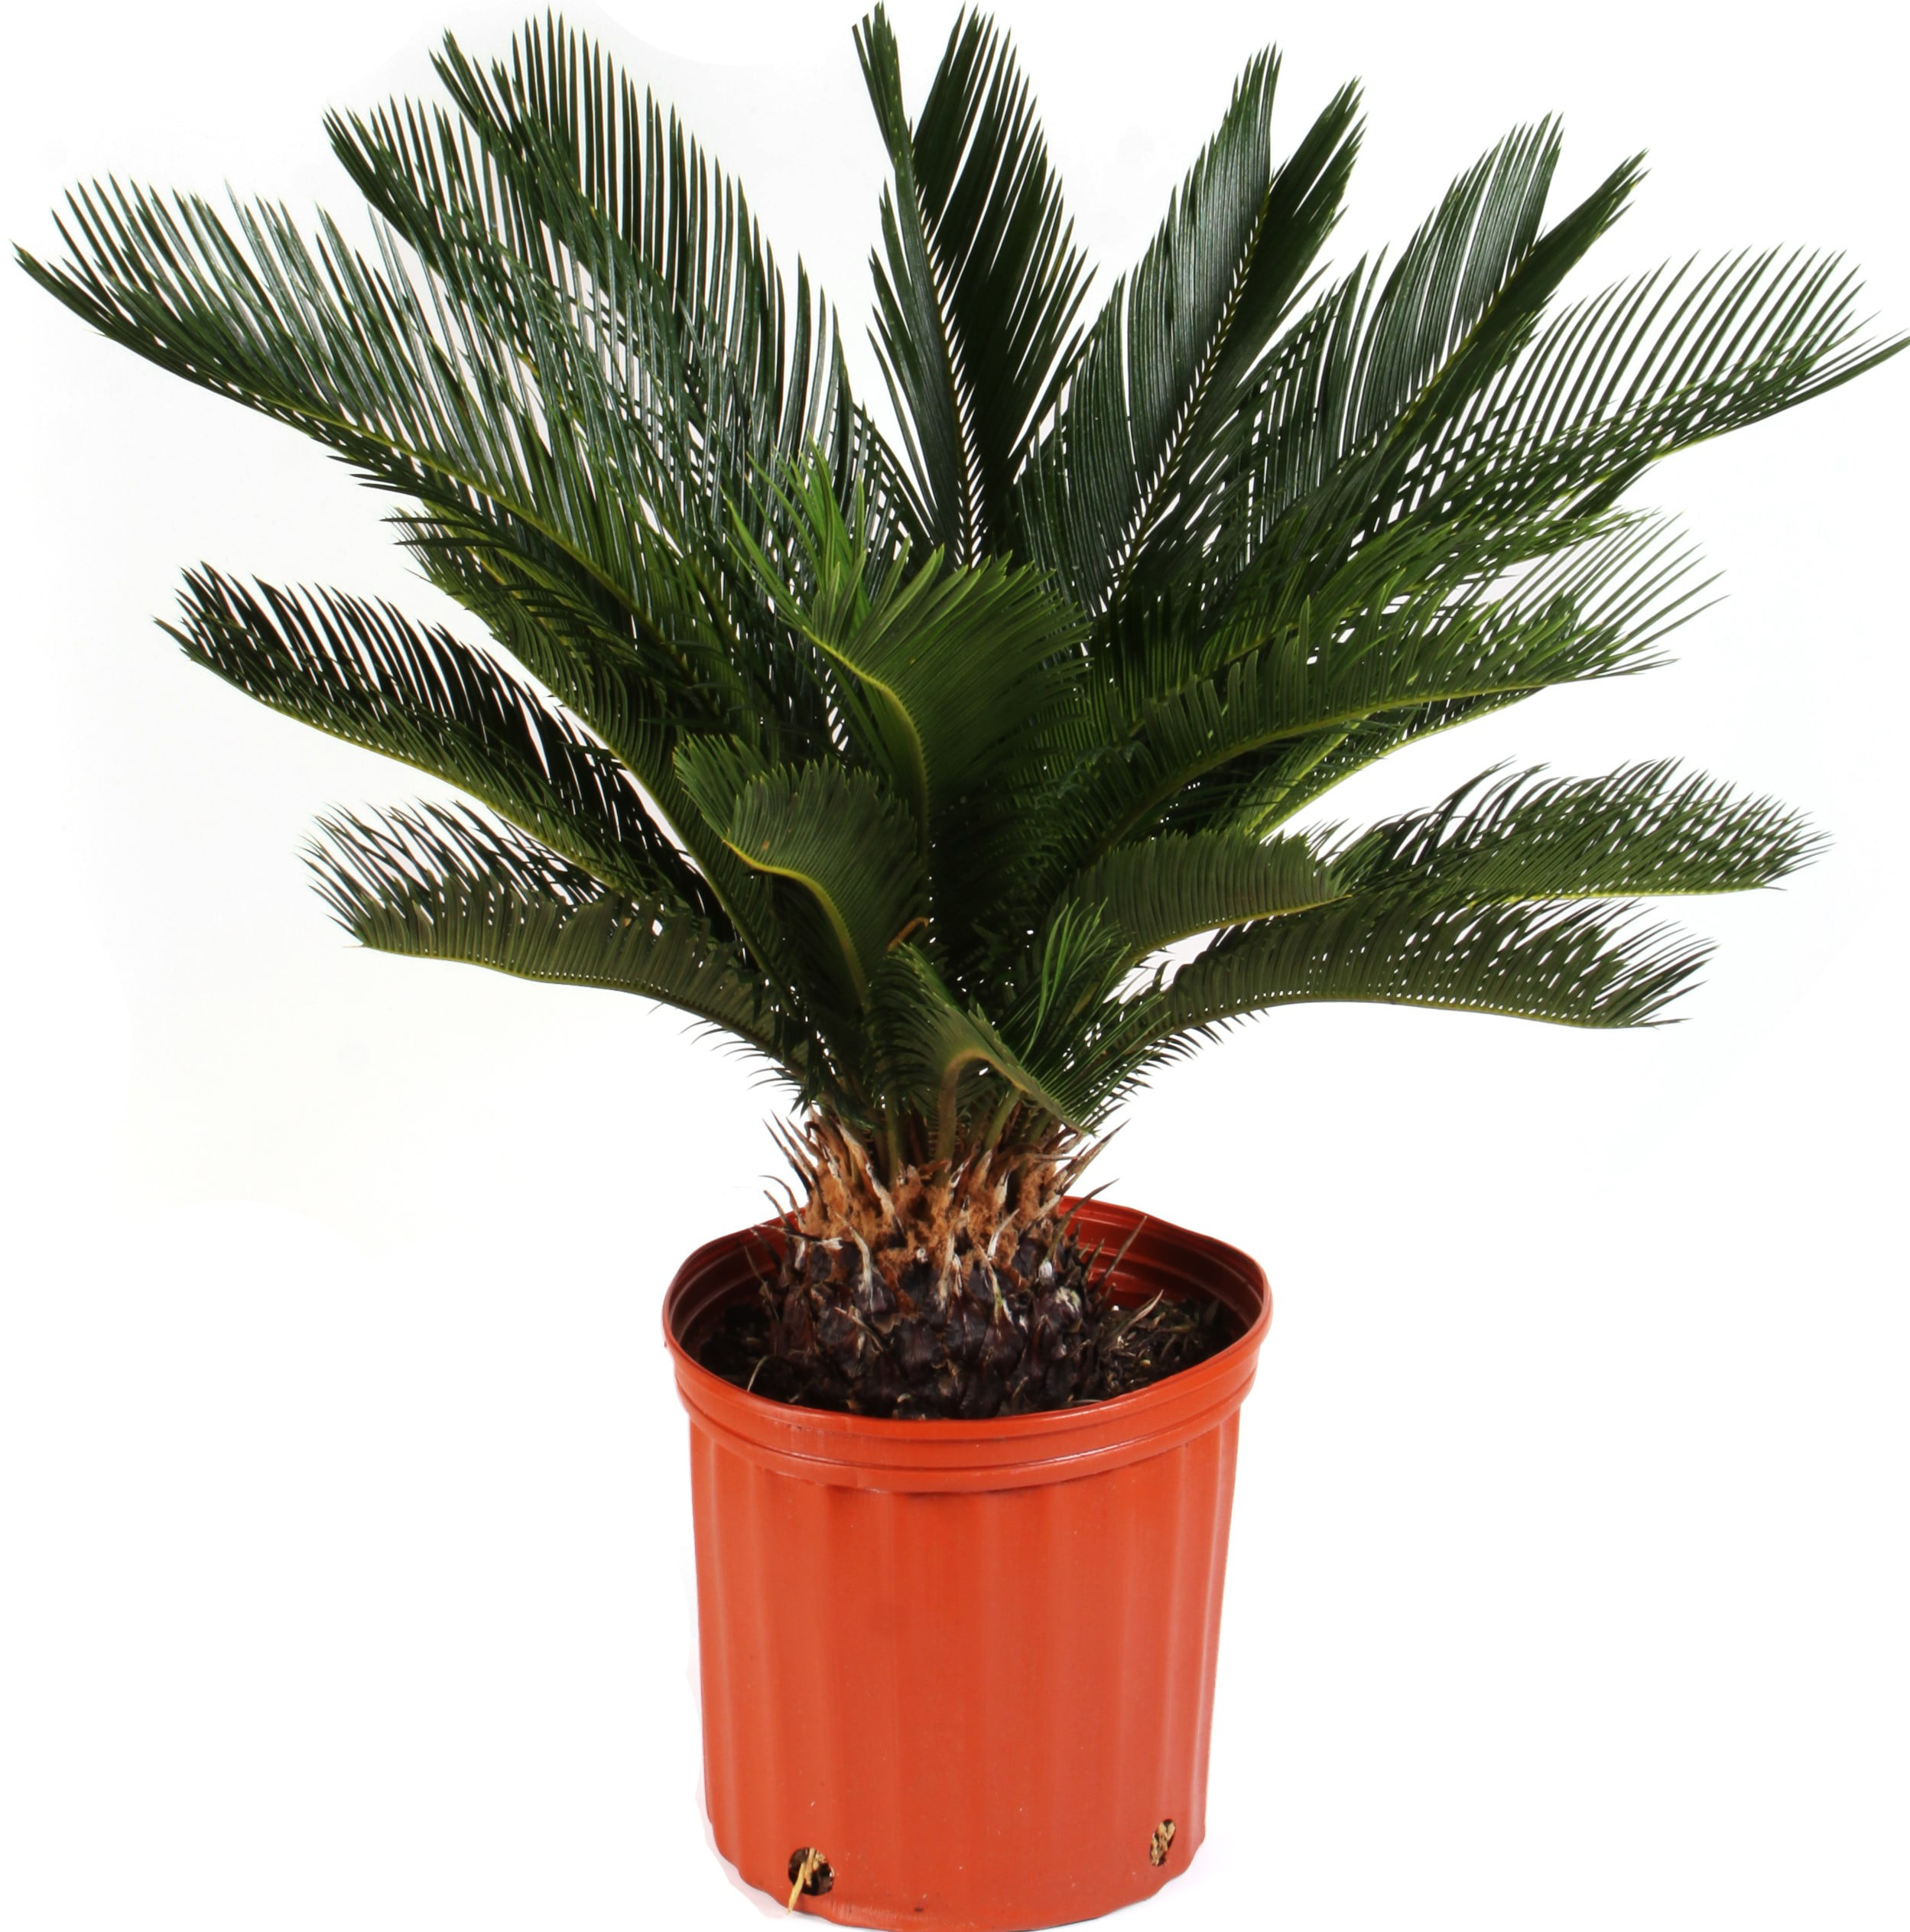 Delray Plants Sago Palm Cycas Revoluta Easy To Grow Live House Plant 10 Inch Grower Pot